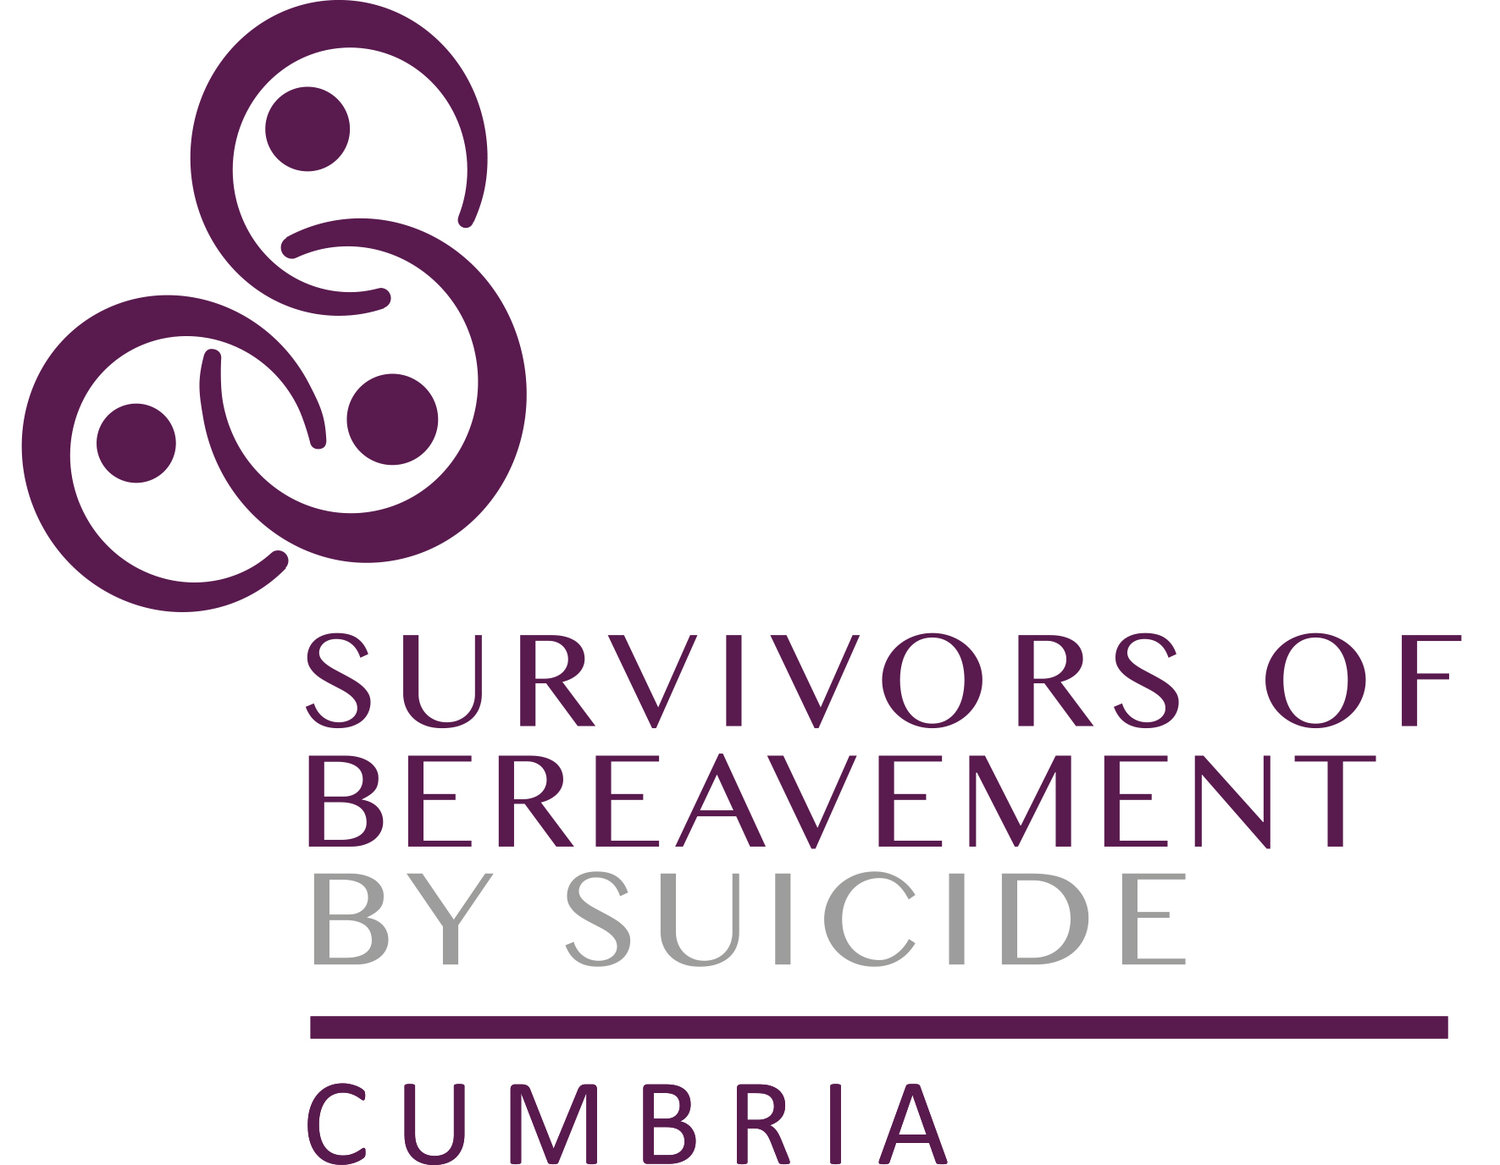 Survivors of Bereavement by Suicide (Cumbria)